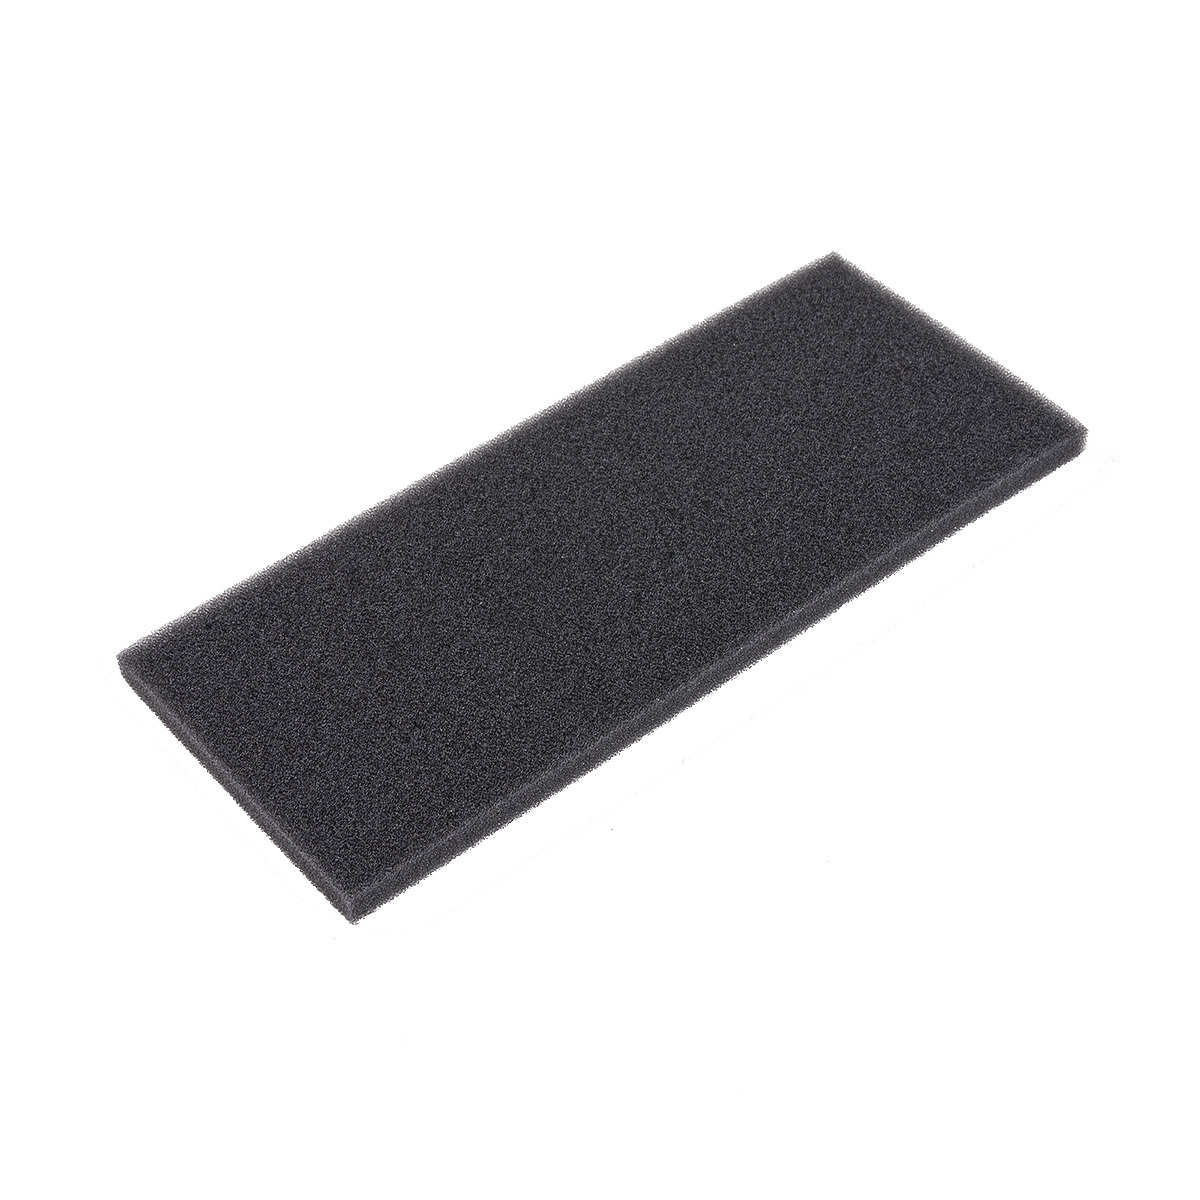 Foam Prefilter For 300, GT, GX, LT And LX  Series Riding Lawn Mowers